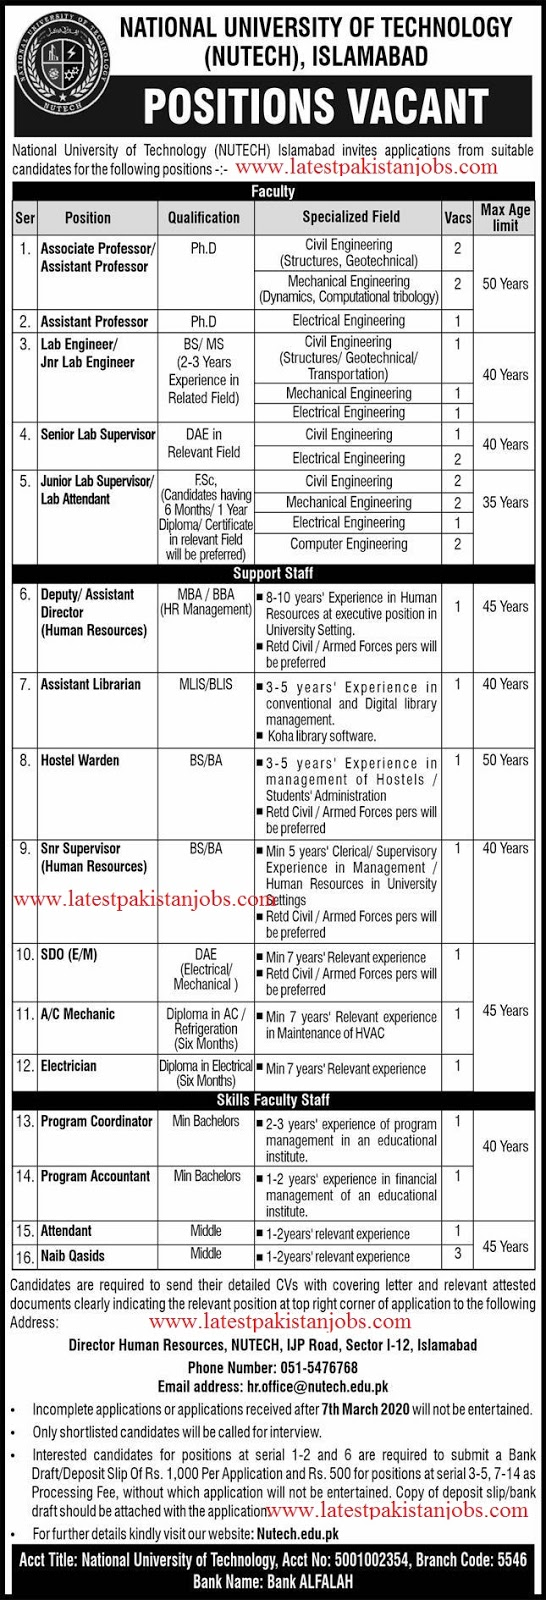 Latest National University Of Technology (NUTECH), Islamabad | 50 Plus Jobs